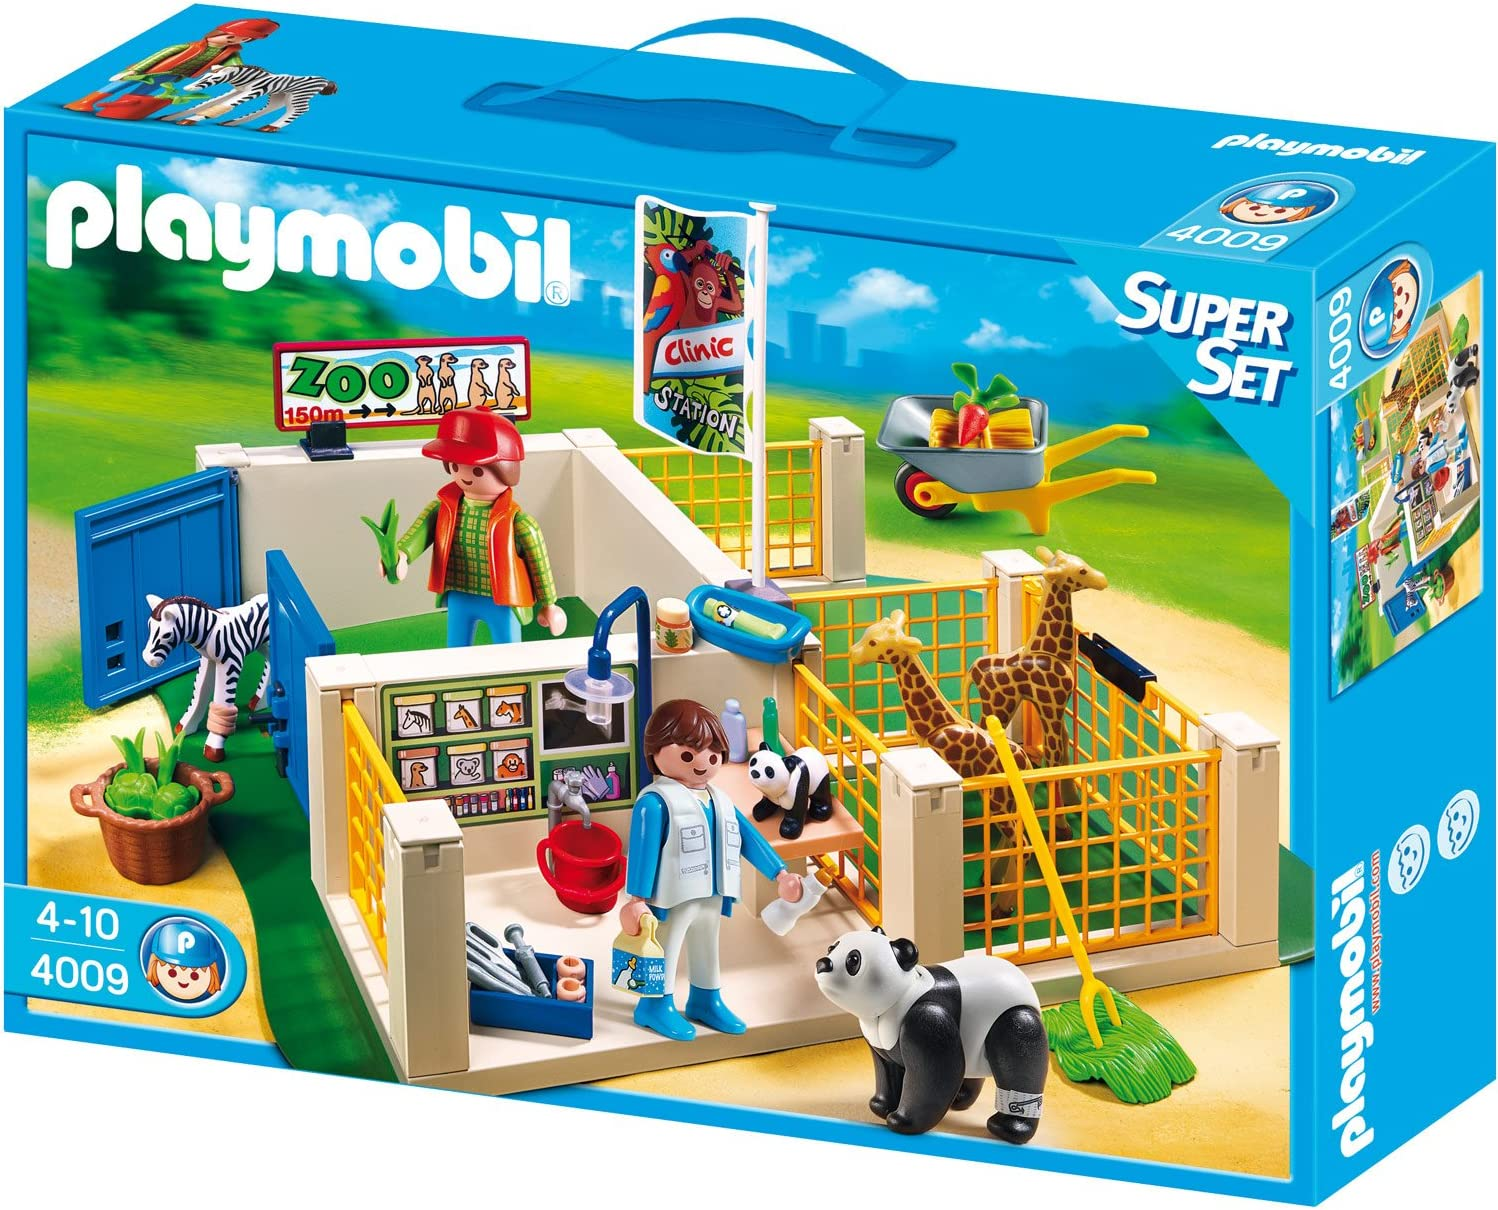 PLAYMOBIL - SuperSet clínica Veterinaria (4009)